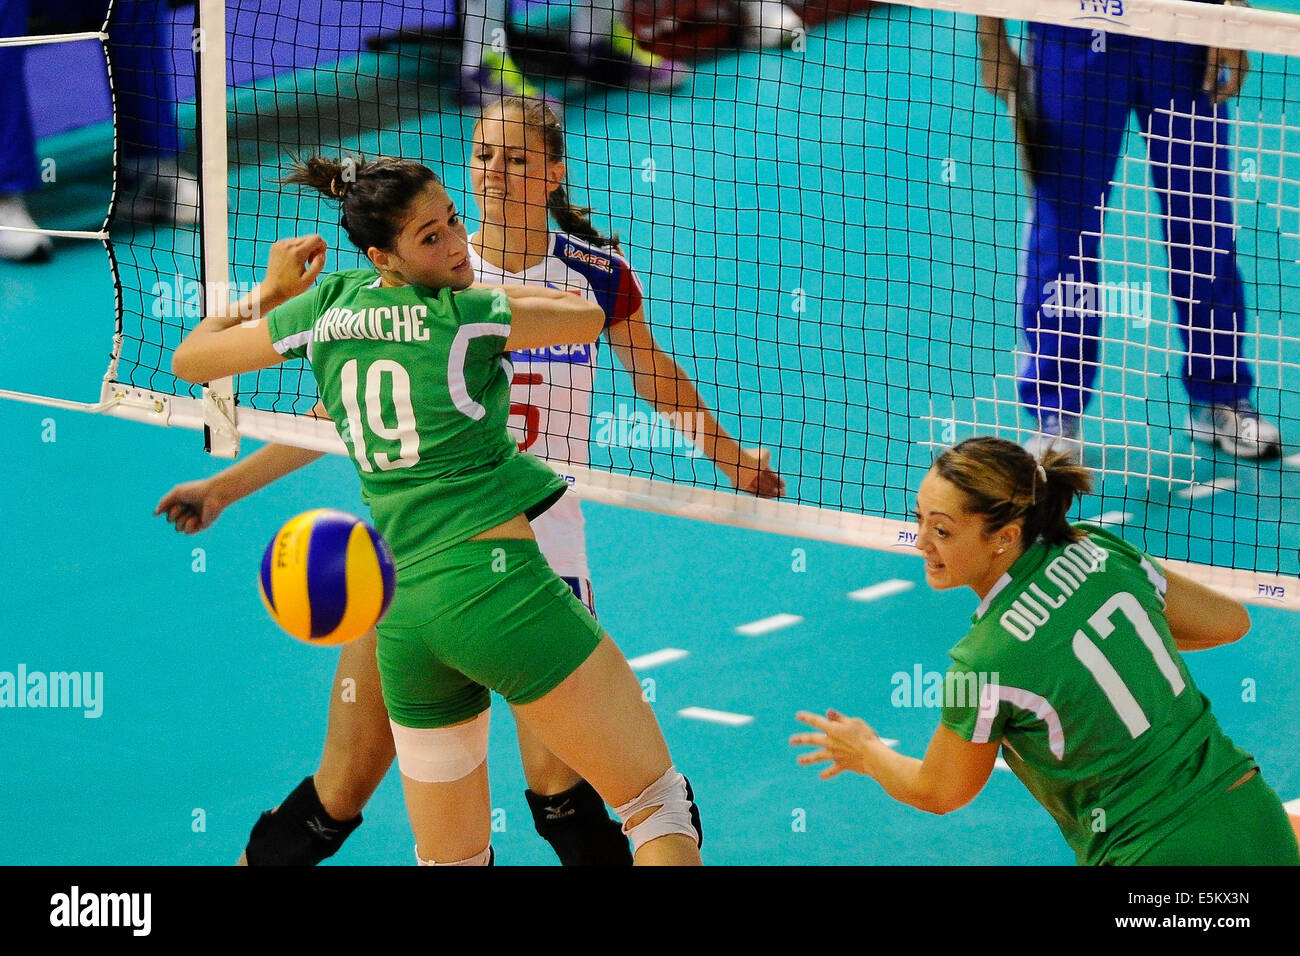 From left: Kahina Arbouche of Algerie, Klara Vyklicka of Czech Republic and Lydia Ulmu of Algeria pictured duringStock Photo